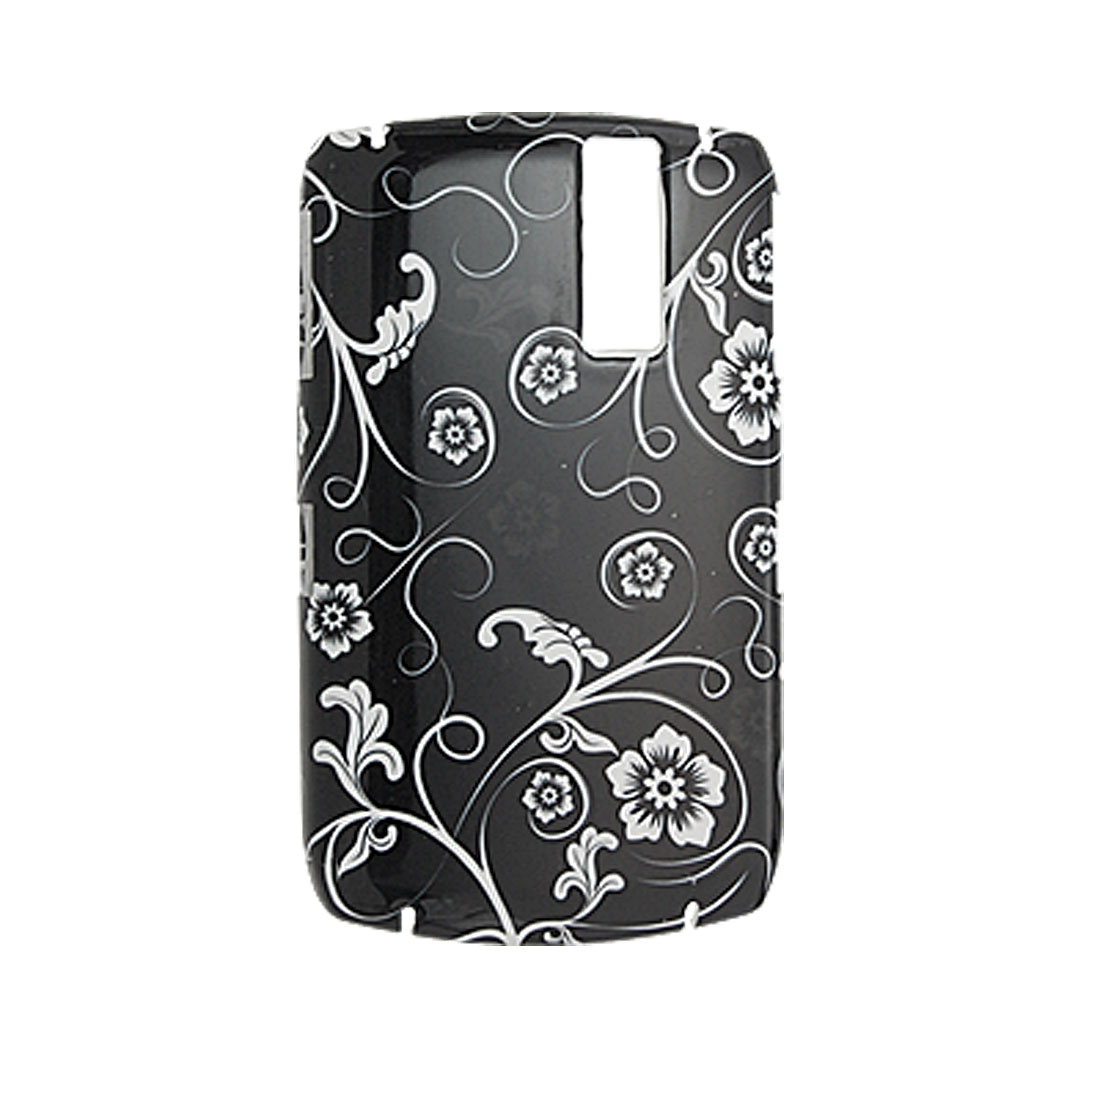 Black Hard Case Flower Plastic Cover for Blackberry 8300